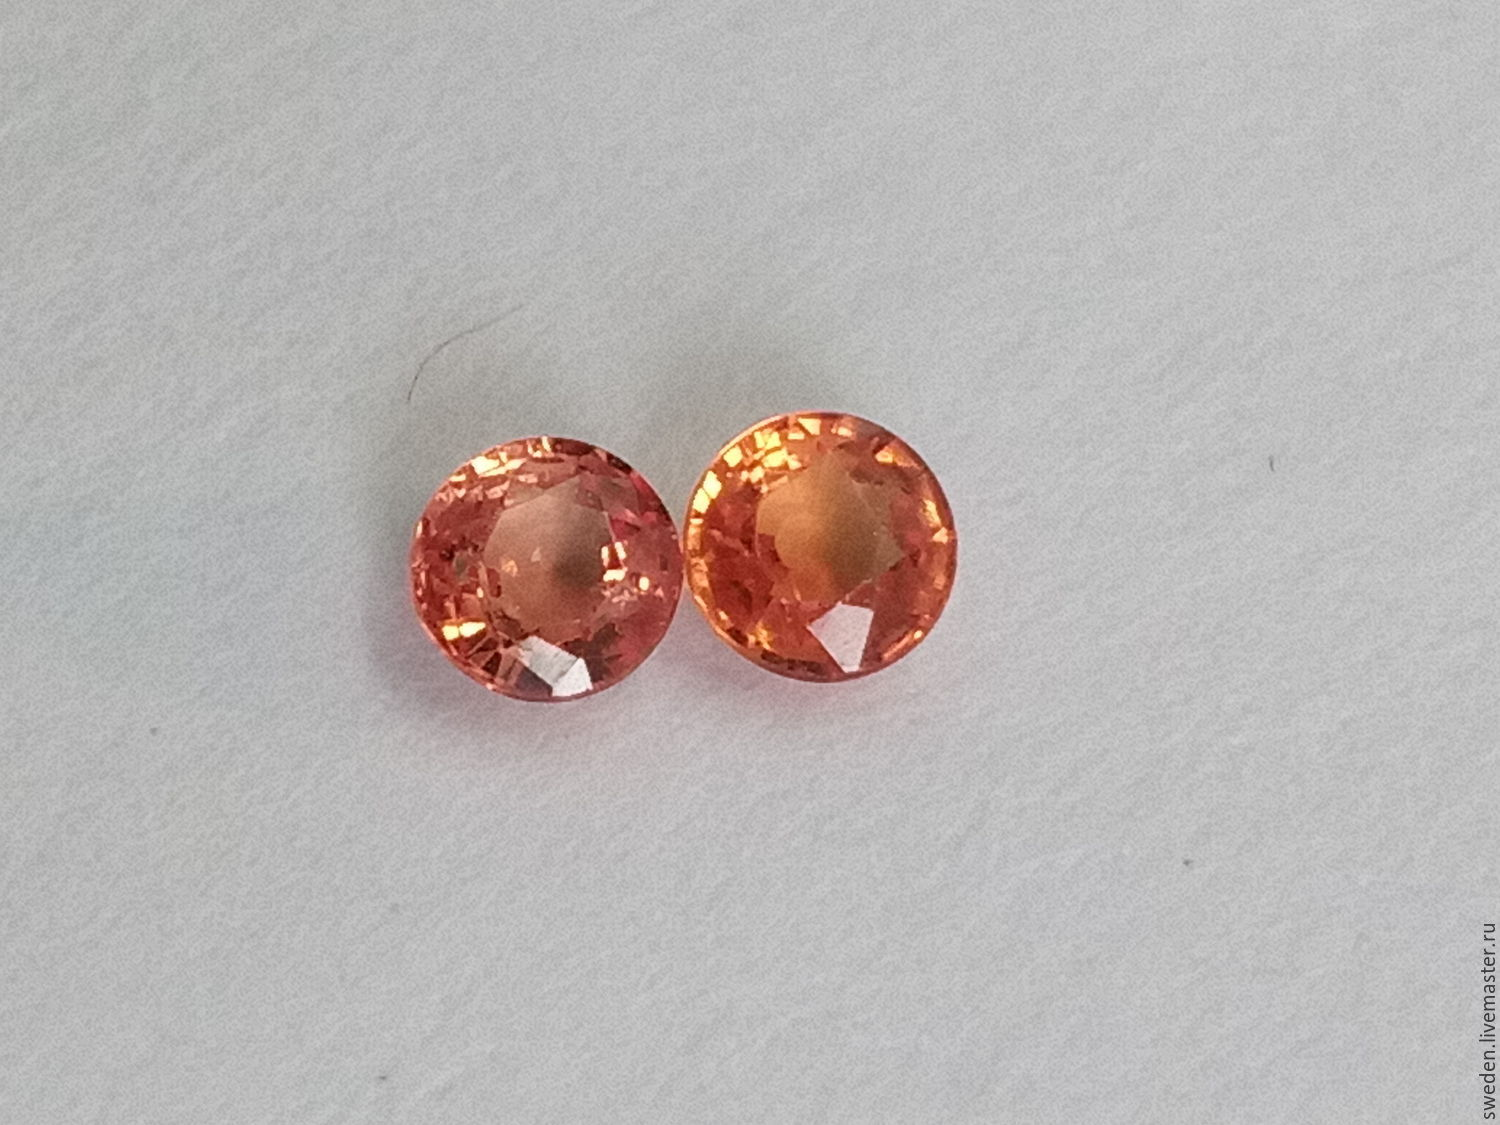 chatham yellow diamond gold padparadscha created sapphire and earrings